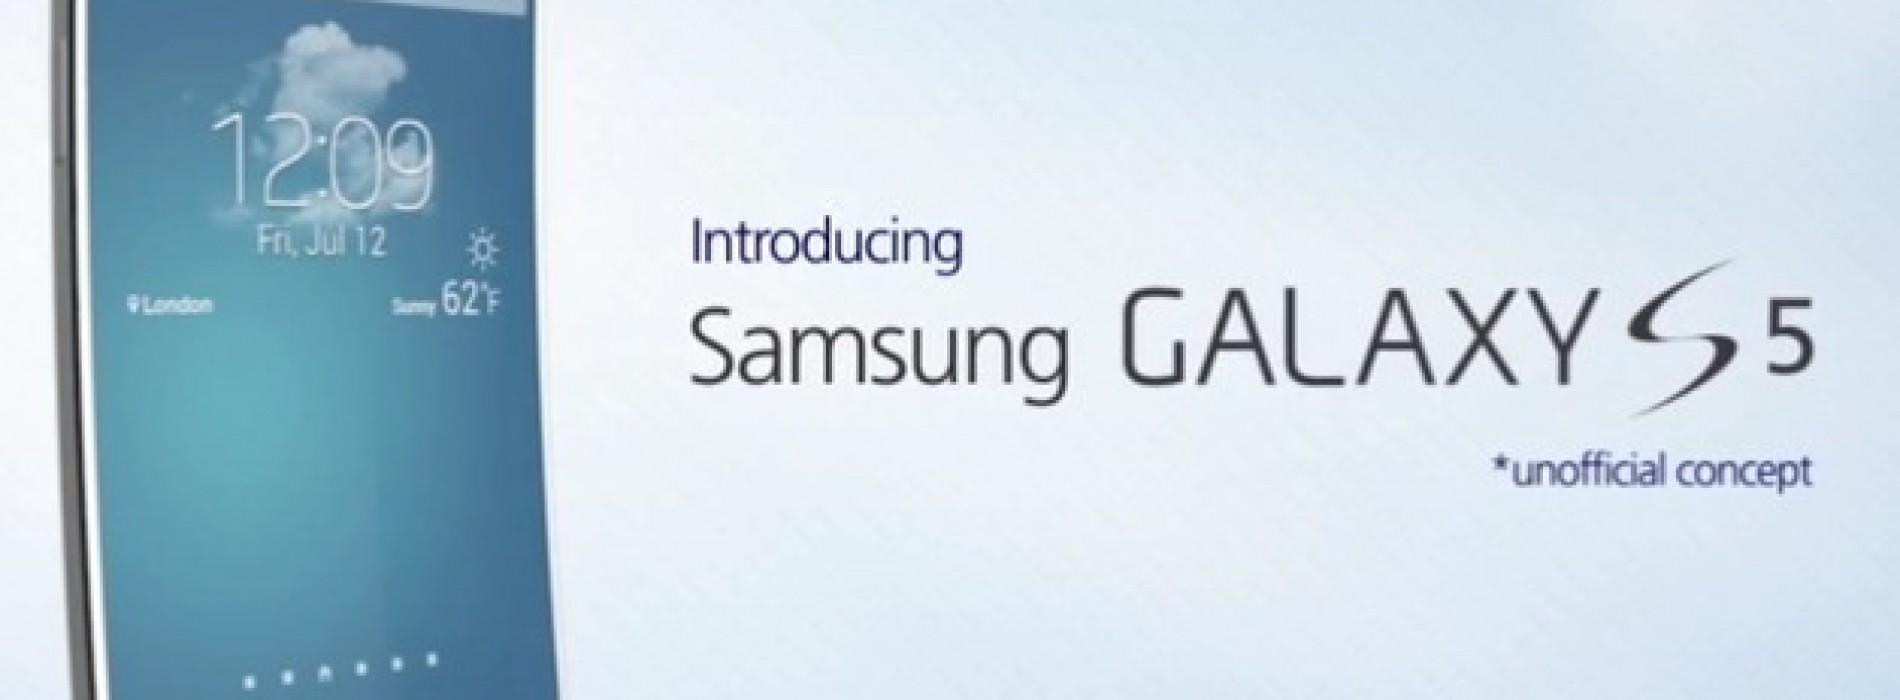 Bloomberg: Samsung Galaxy S5 to feature a larger and sharper display